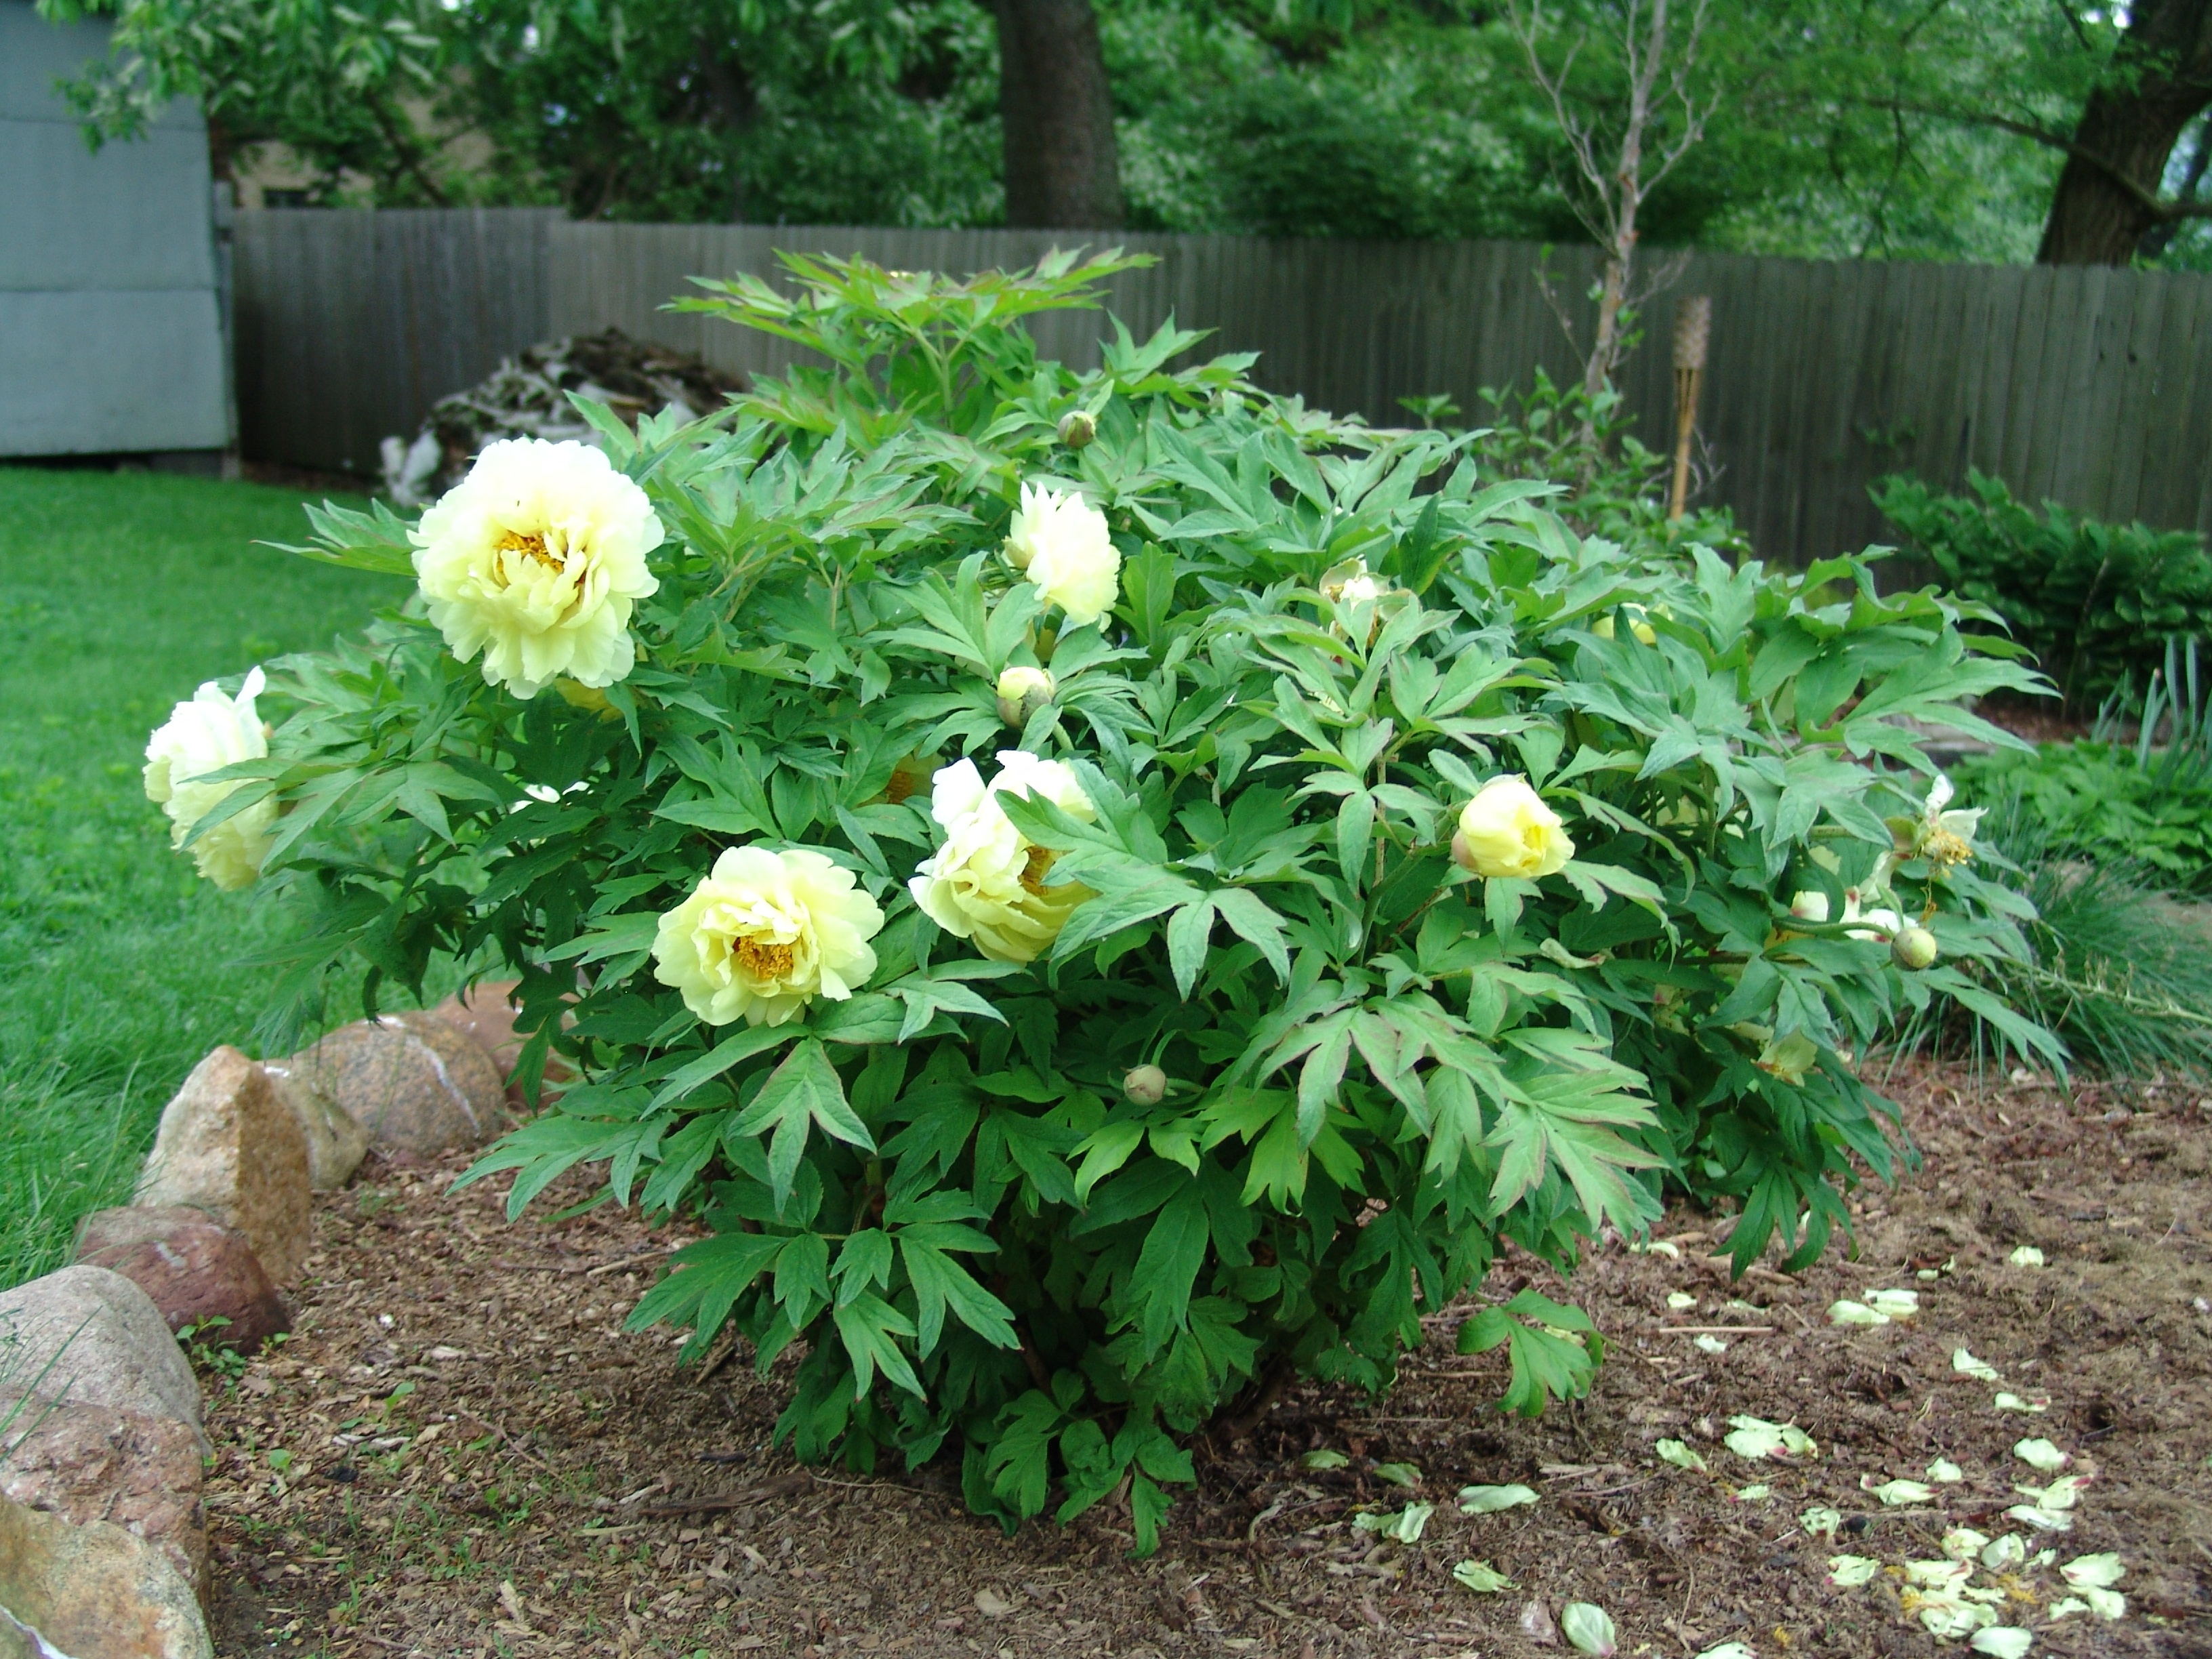 yellow tree peony this yellow tree peony was quick to leaf out and